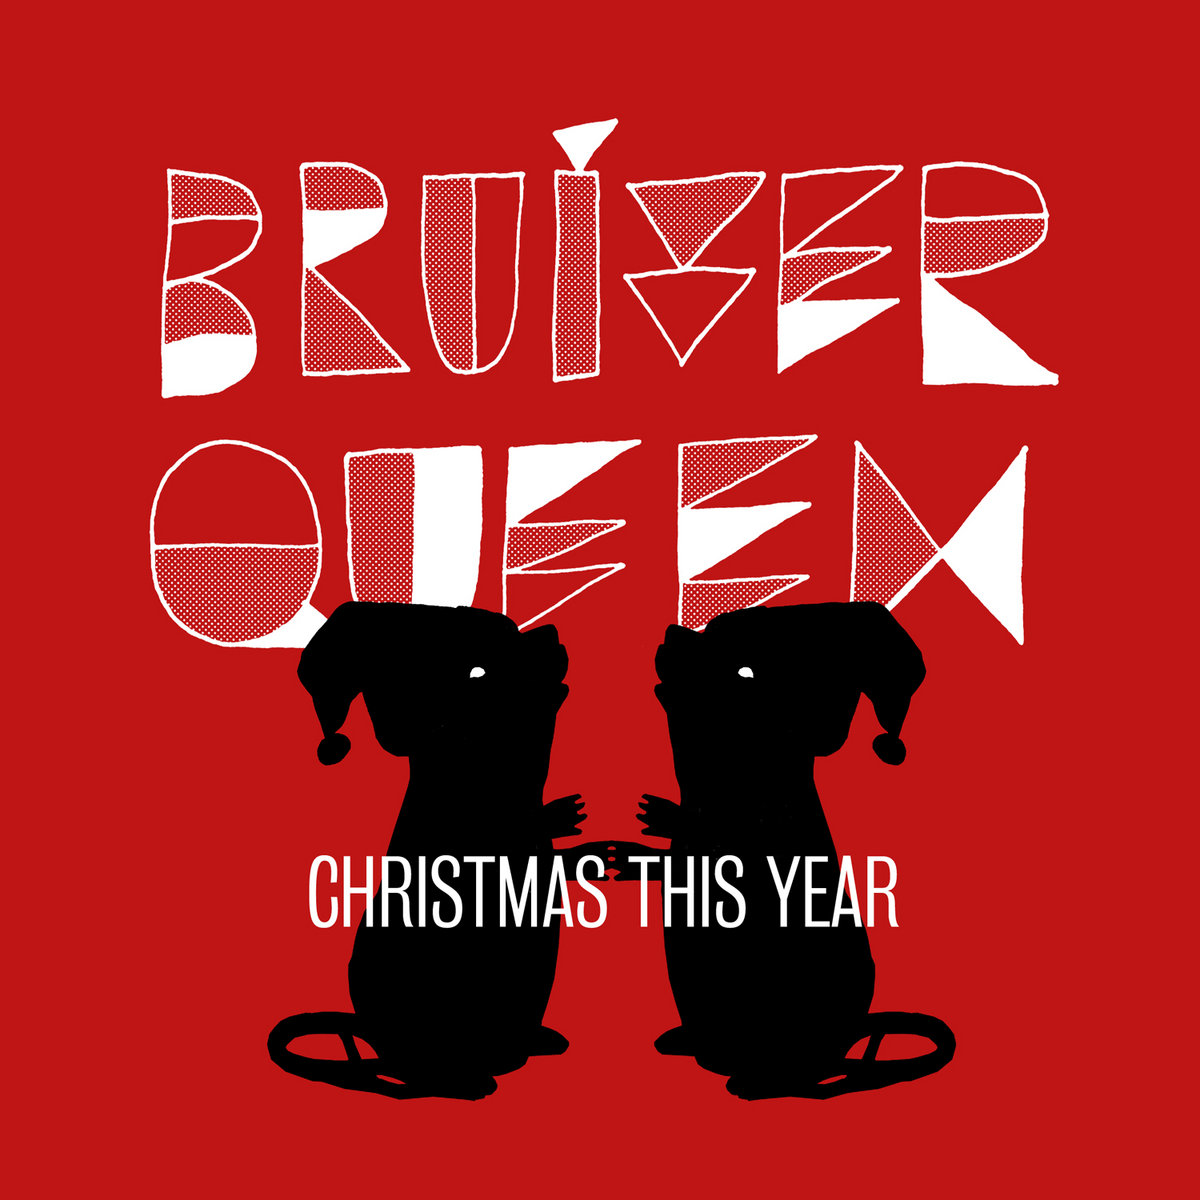 Single At Christmas.Christmas This Year Single Bruiser Queen